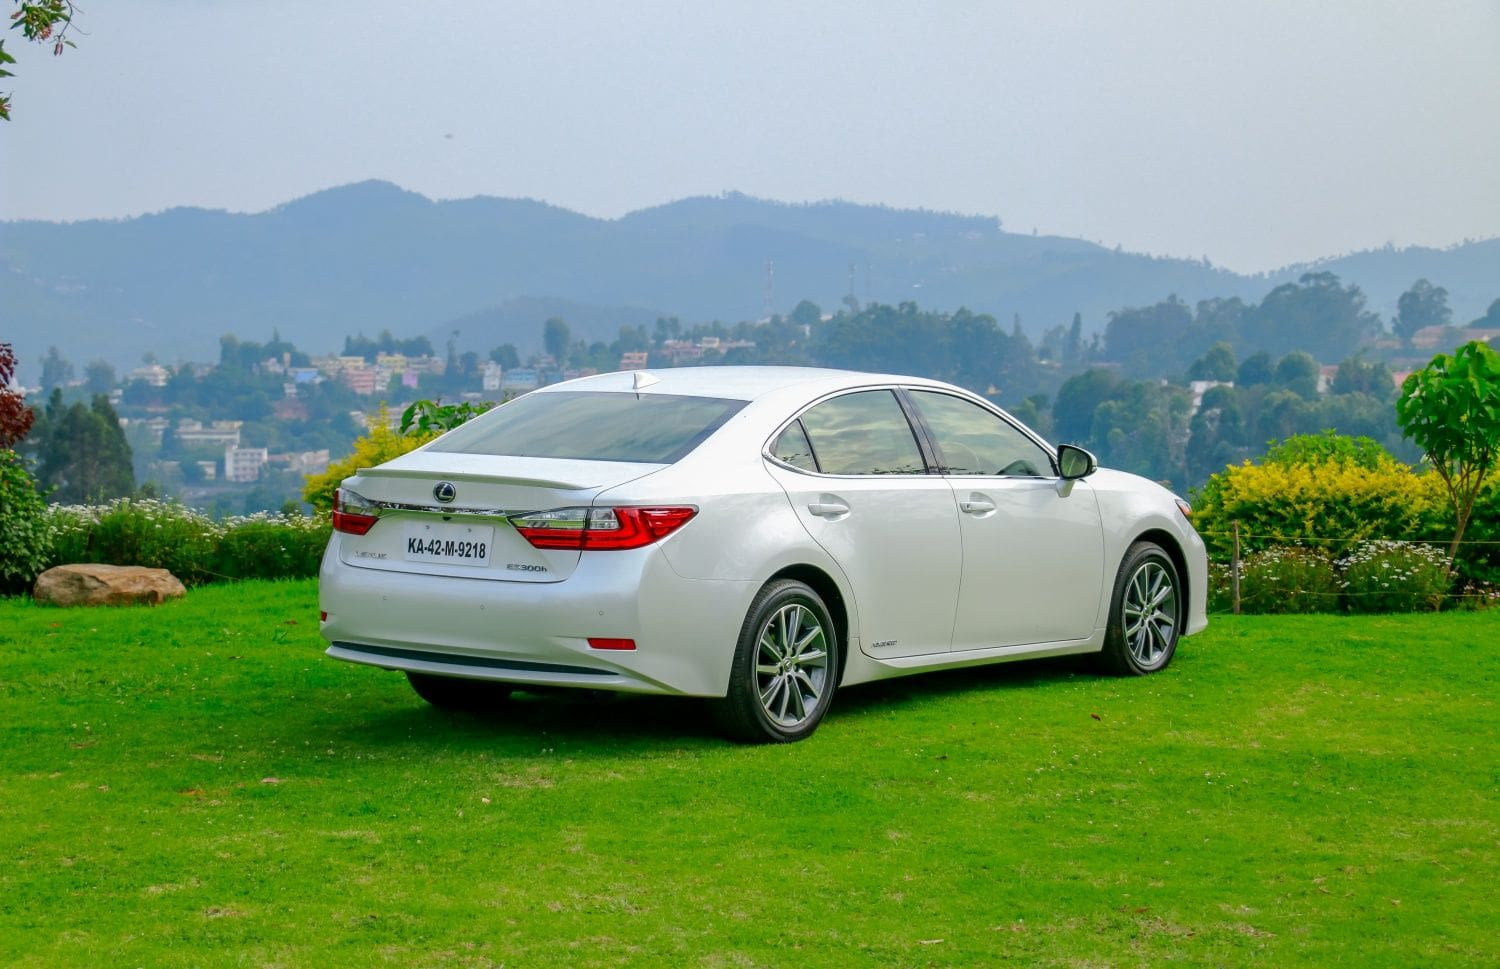 Lexus ES 300h: First Drive Review